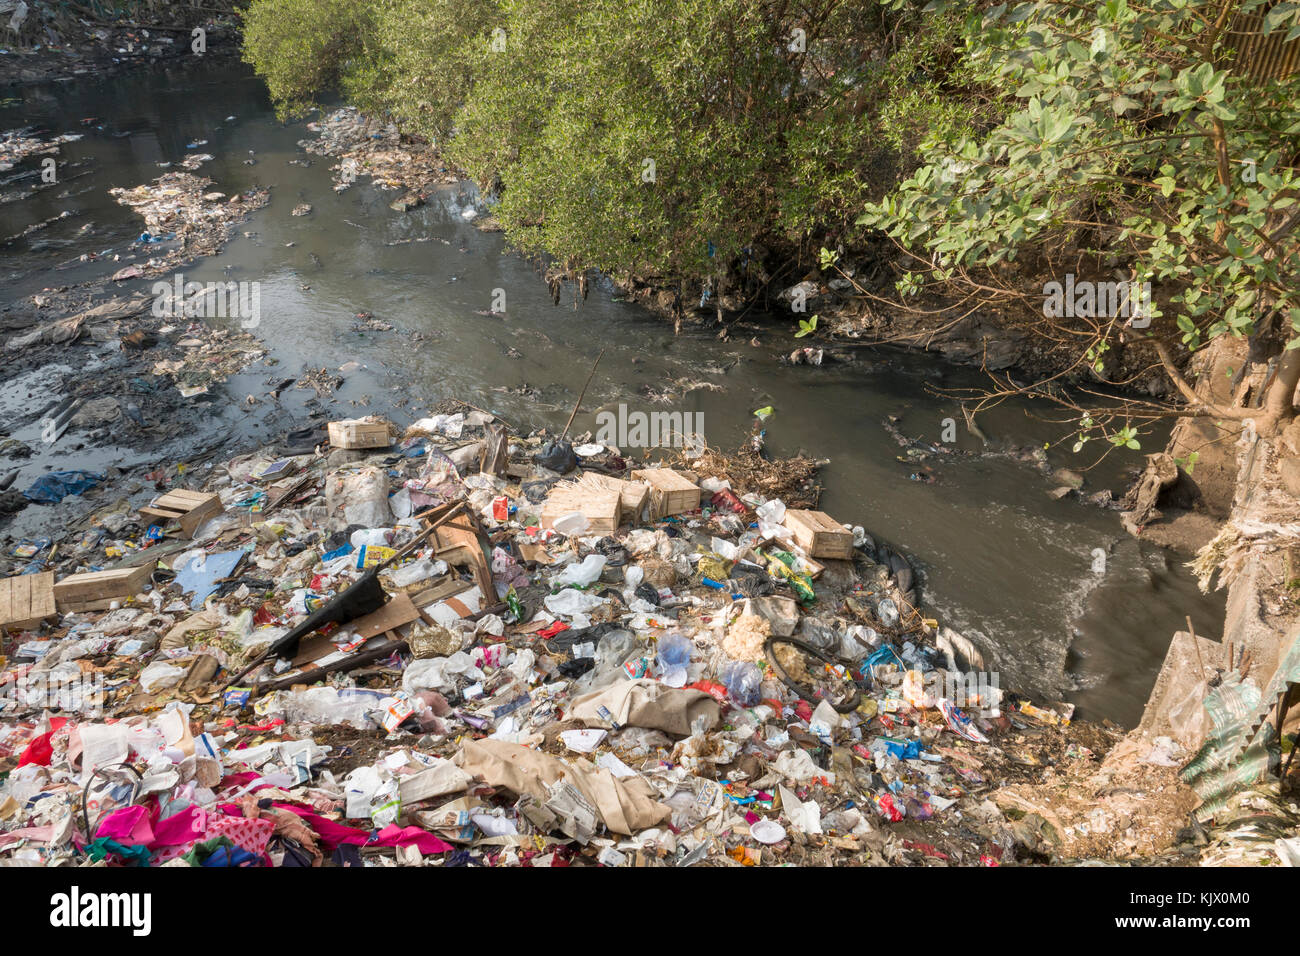 Plastic bags, household waste and sewage create heavy pollution in river at Juhu, Mumbai - Stock Image